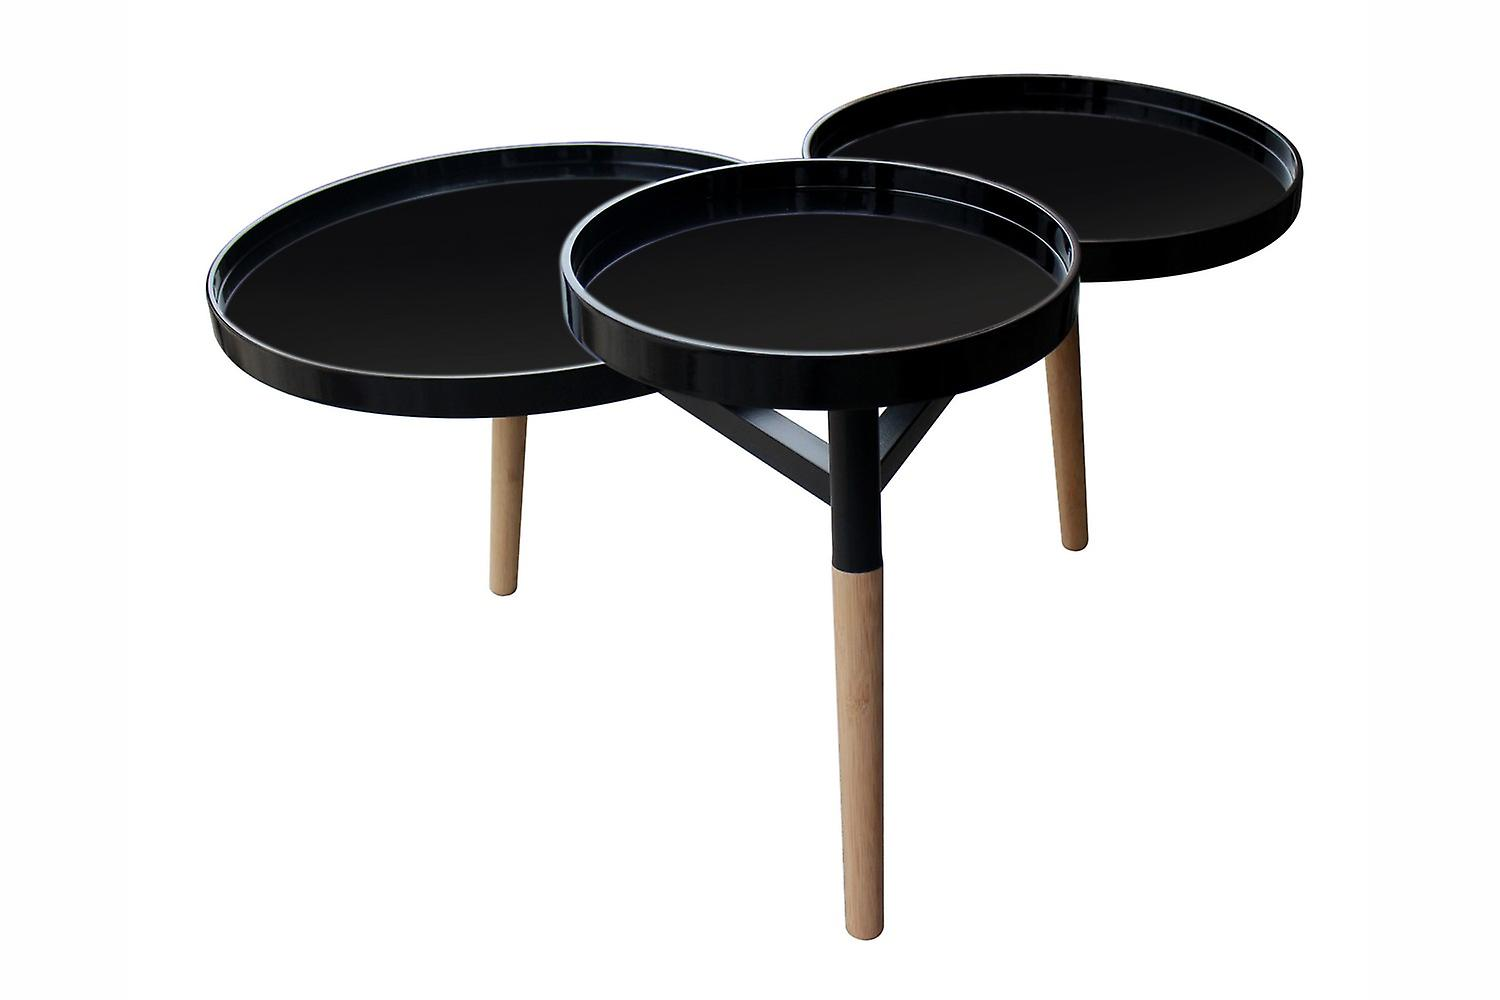 HANDMADE TABLES MDF WITH GLOSS COATING TRAY TABLE BAMBOO BLACK